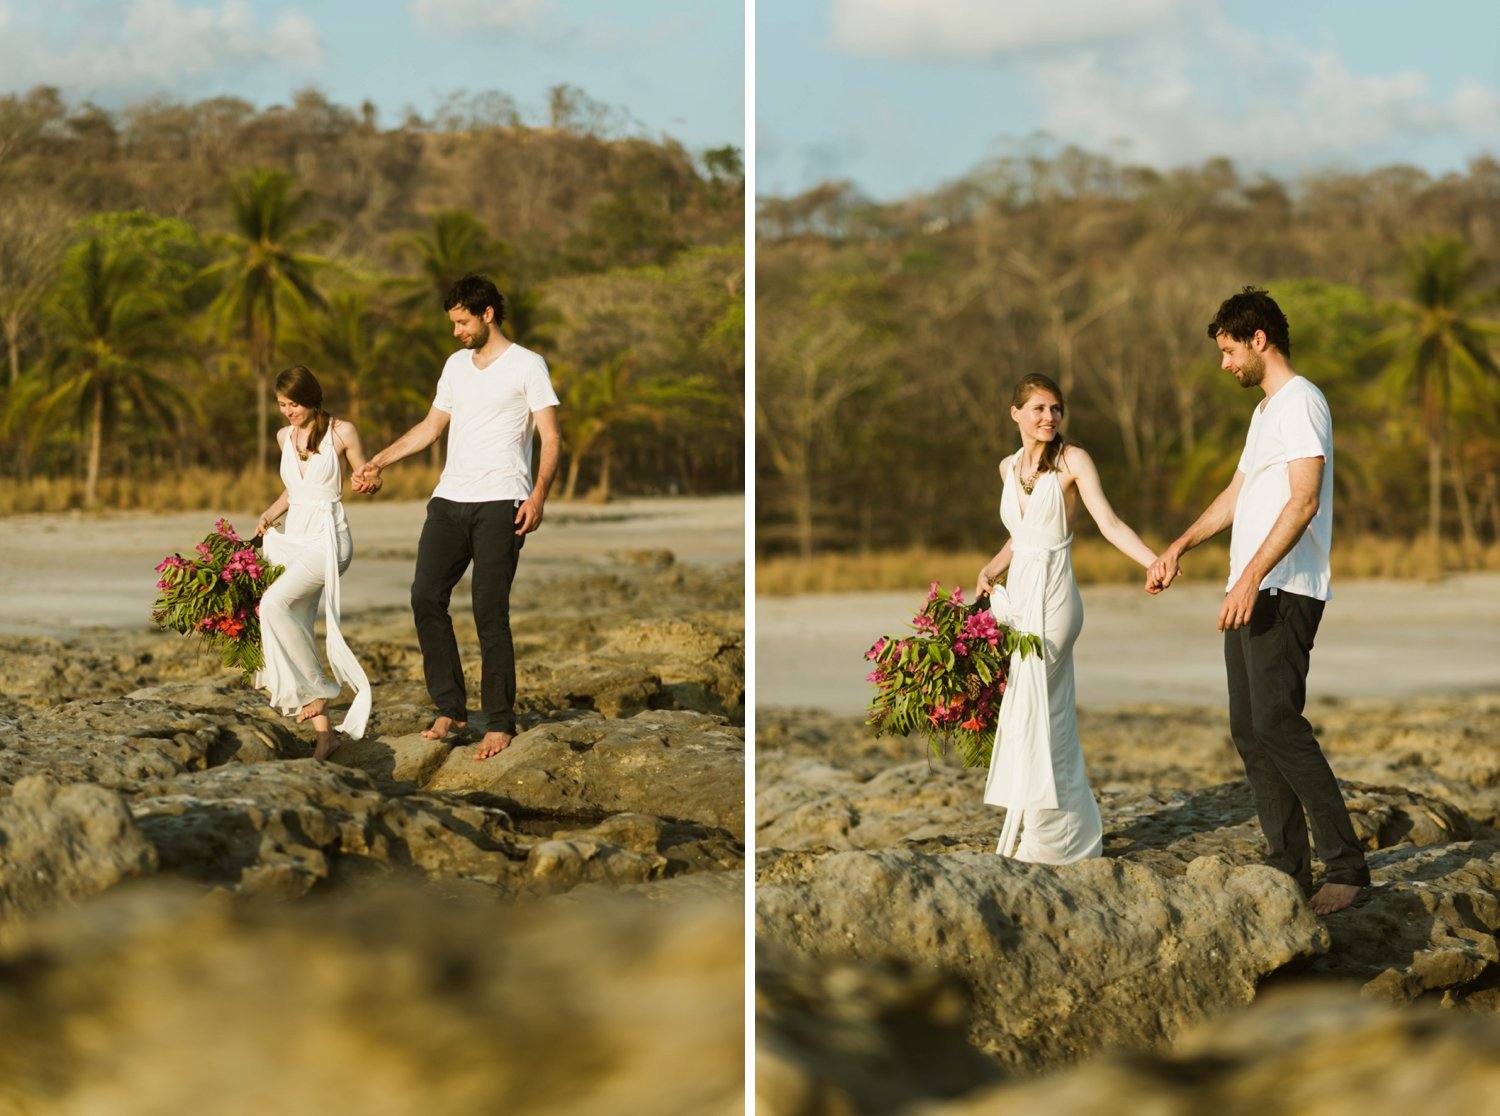 I love this gorgeous beach photoshoot of Stefan and Martina eloping on Costa Rica's Nicoya Peninsula. A destination elopement is totally on my list for great wedding ideas!  Beach wedding photography by destination wedding photographer, Maddie Mae.